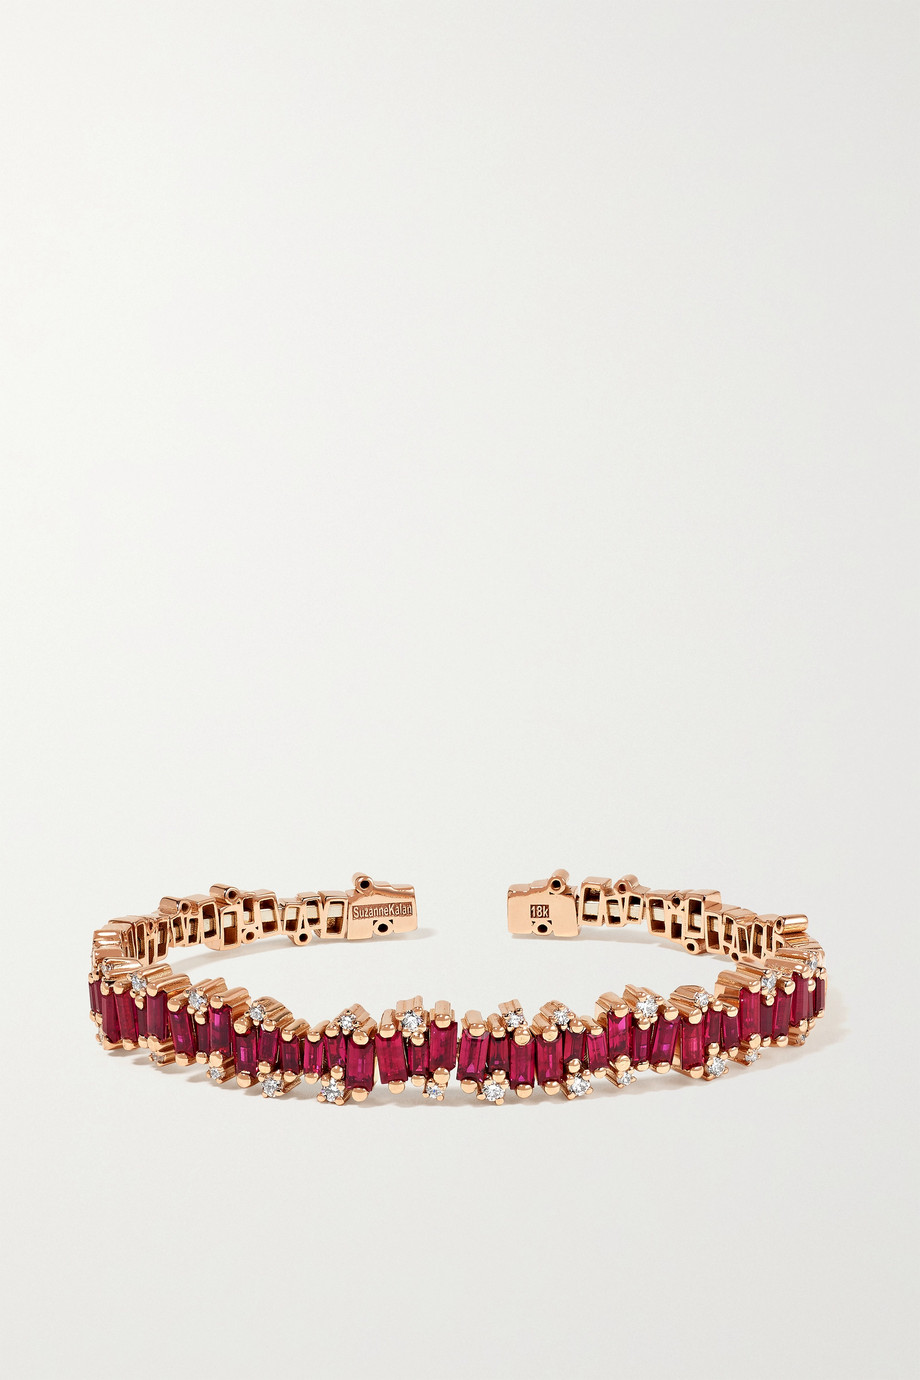 Suzanne Kalan Bracelet en or rose 18 carats, rubis et diamants